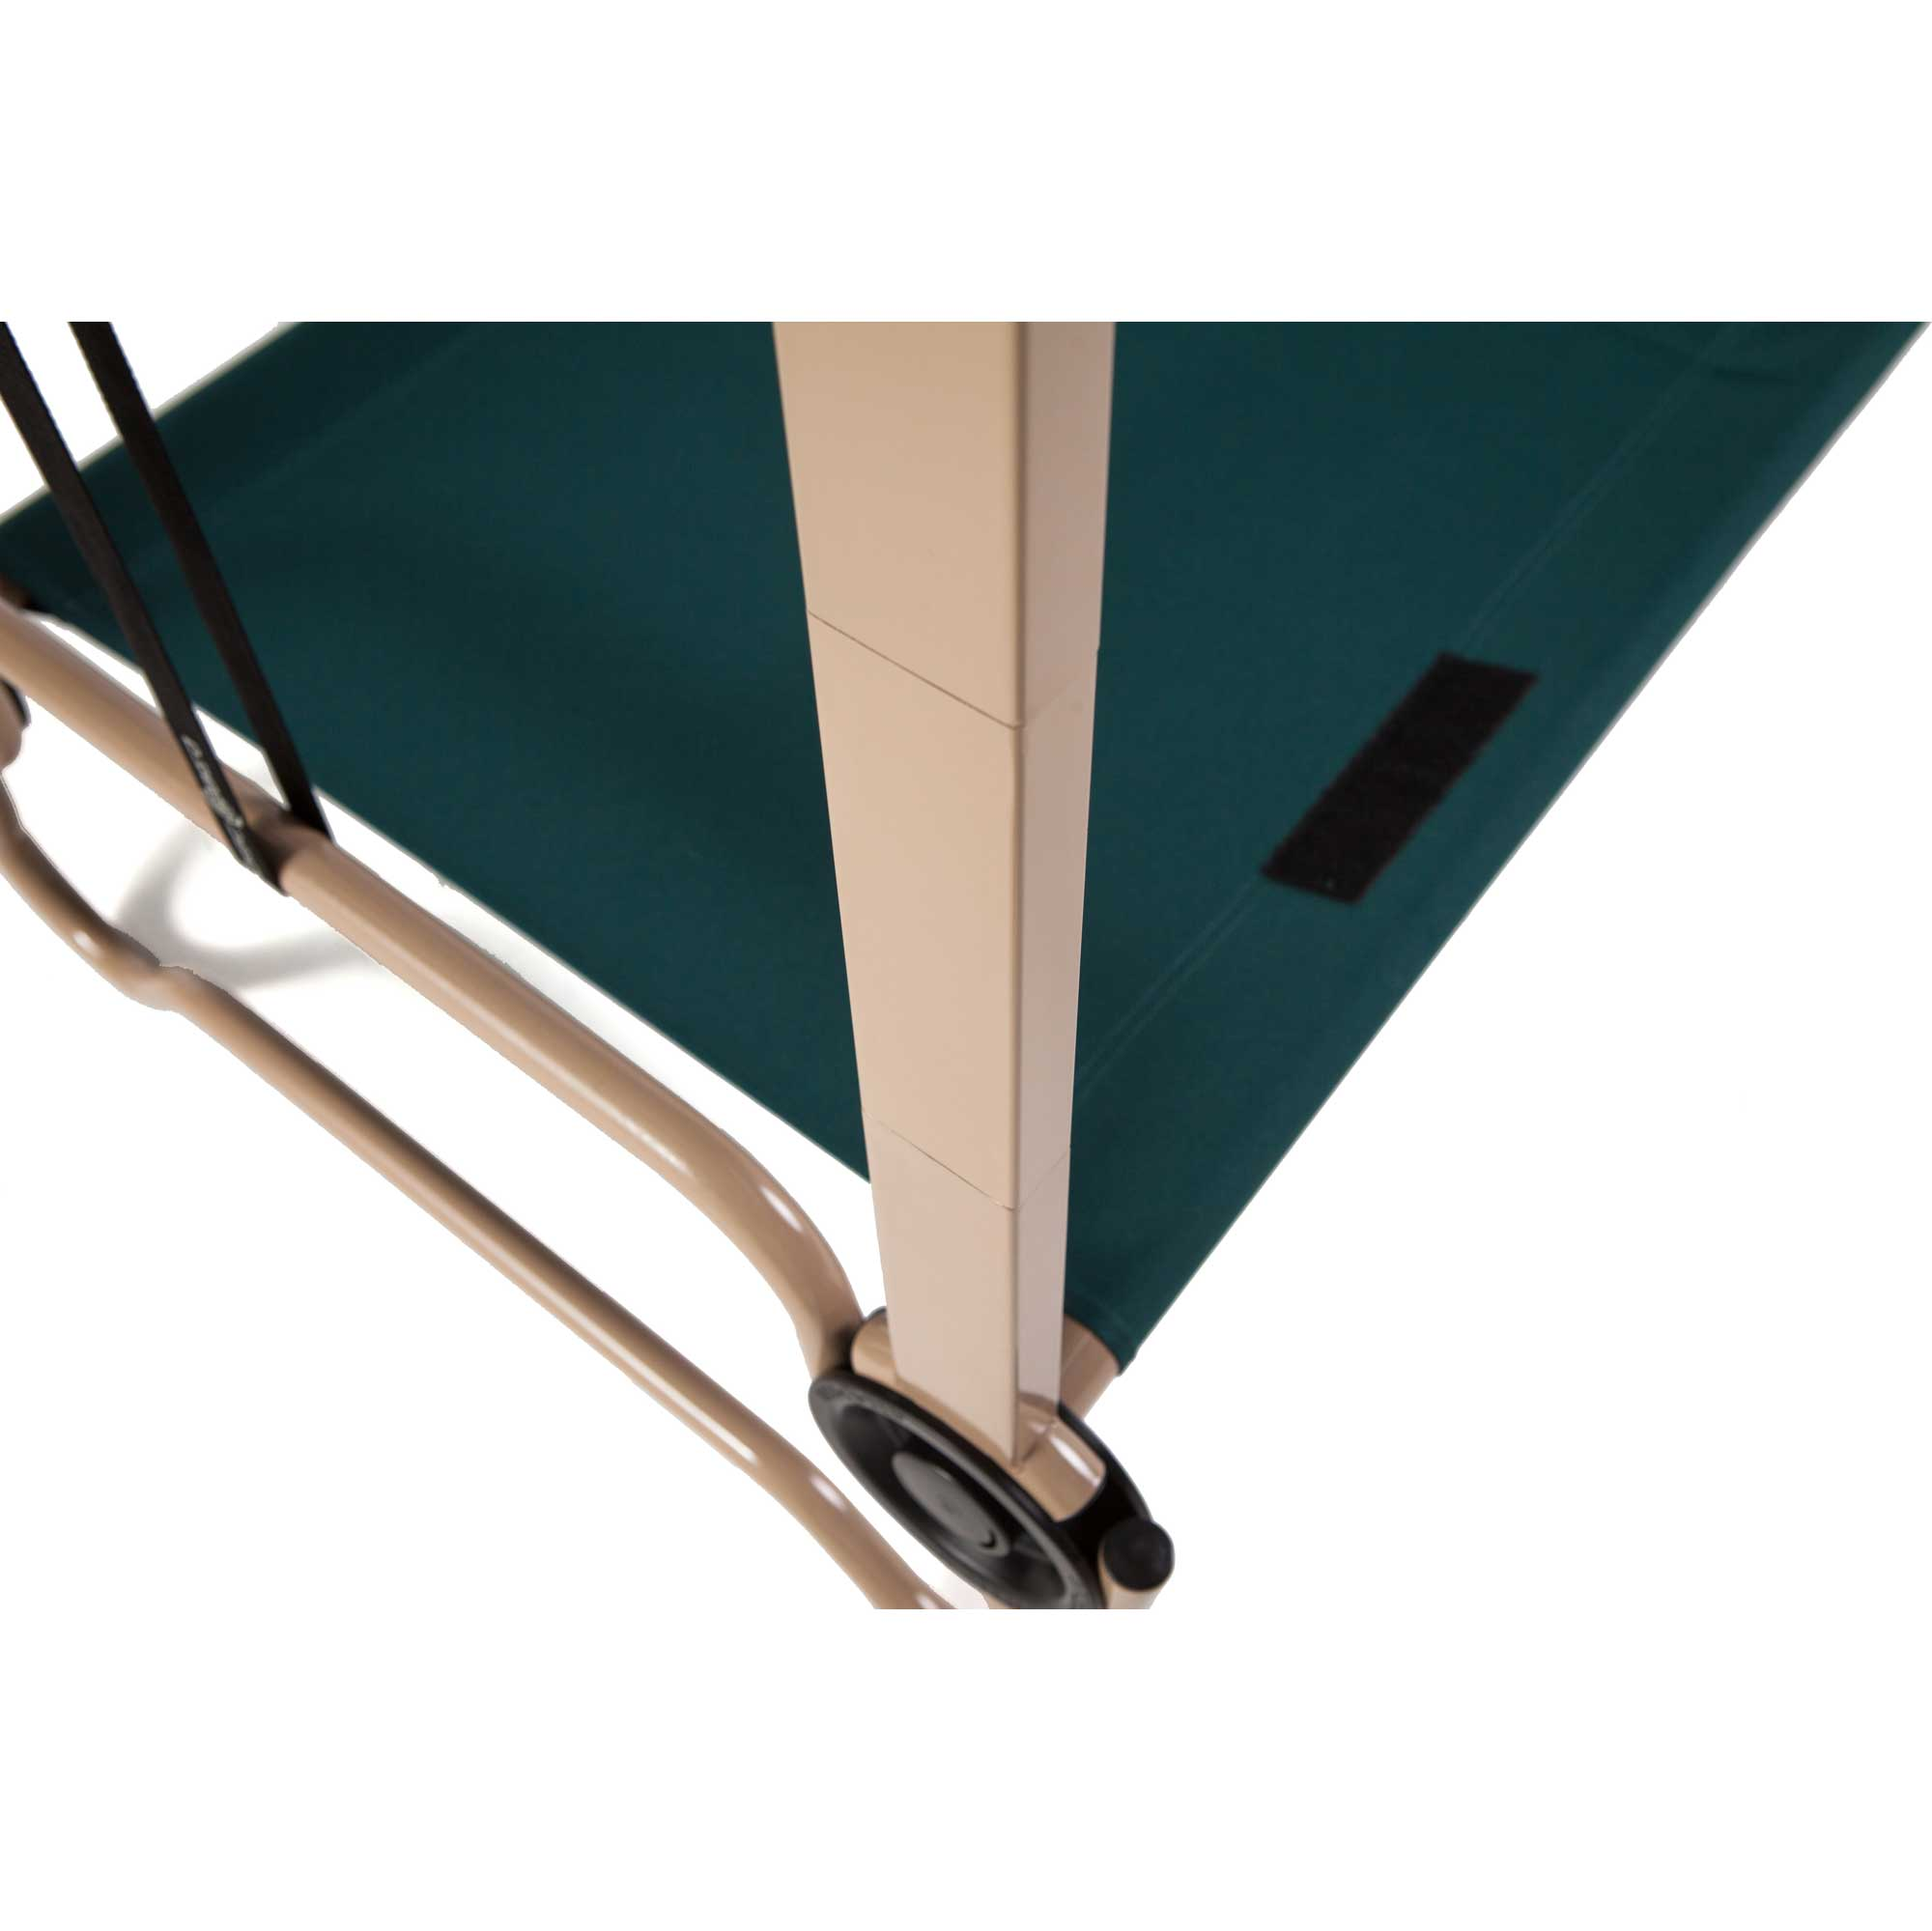 Disc O Bed 7 Quot Steel Leg Height Extensions For Disc O Bed